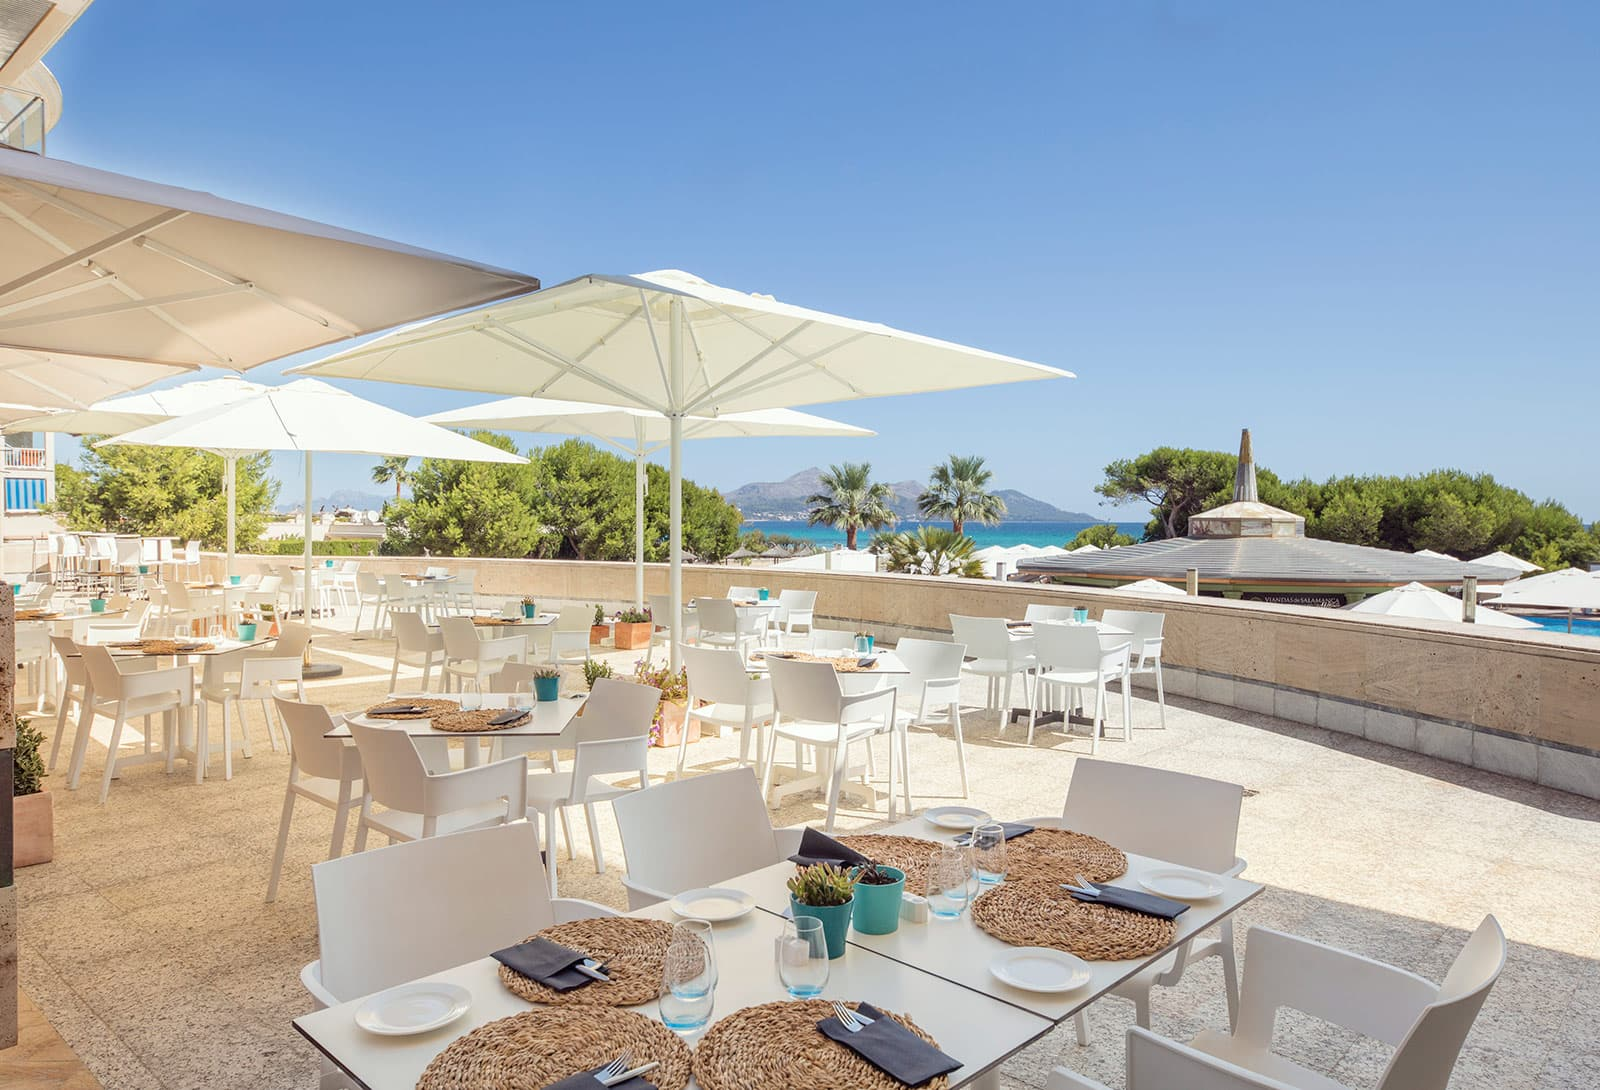 Terraza Restaurante Mare, Be Live Collection Palace Muro